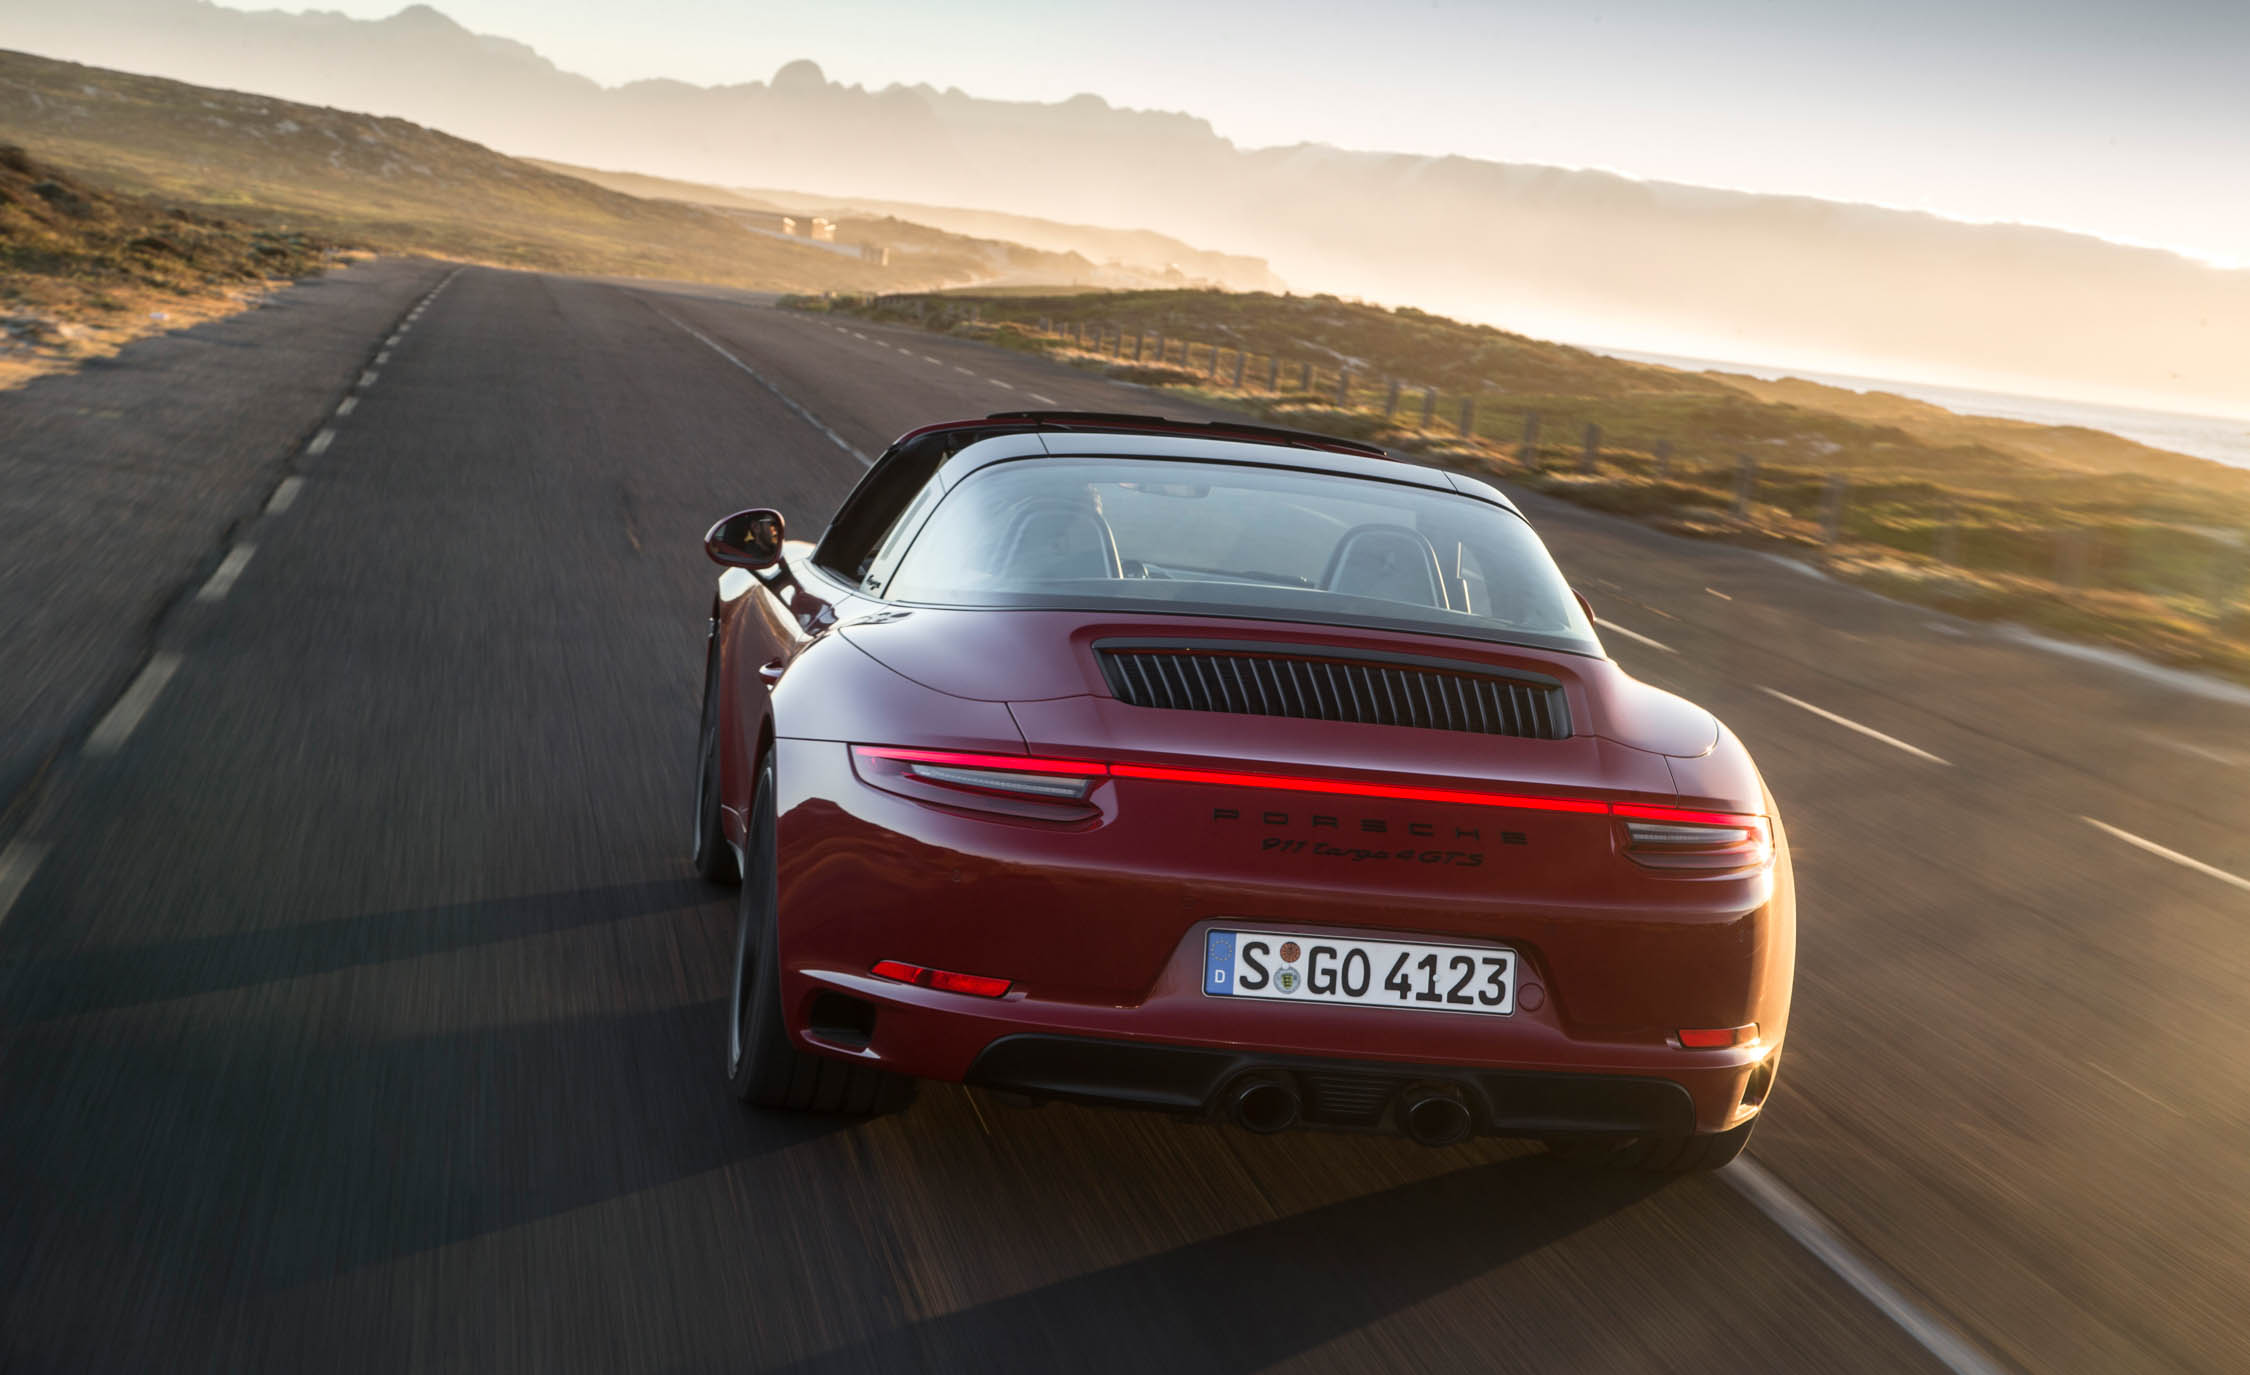 2017 Porsche 911 Targa 4 GTS Red Test Drive Rear View (Photo 89 of 97)